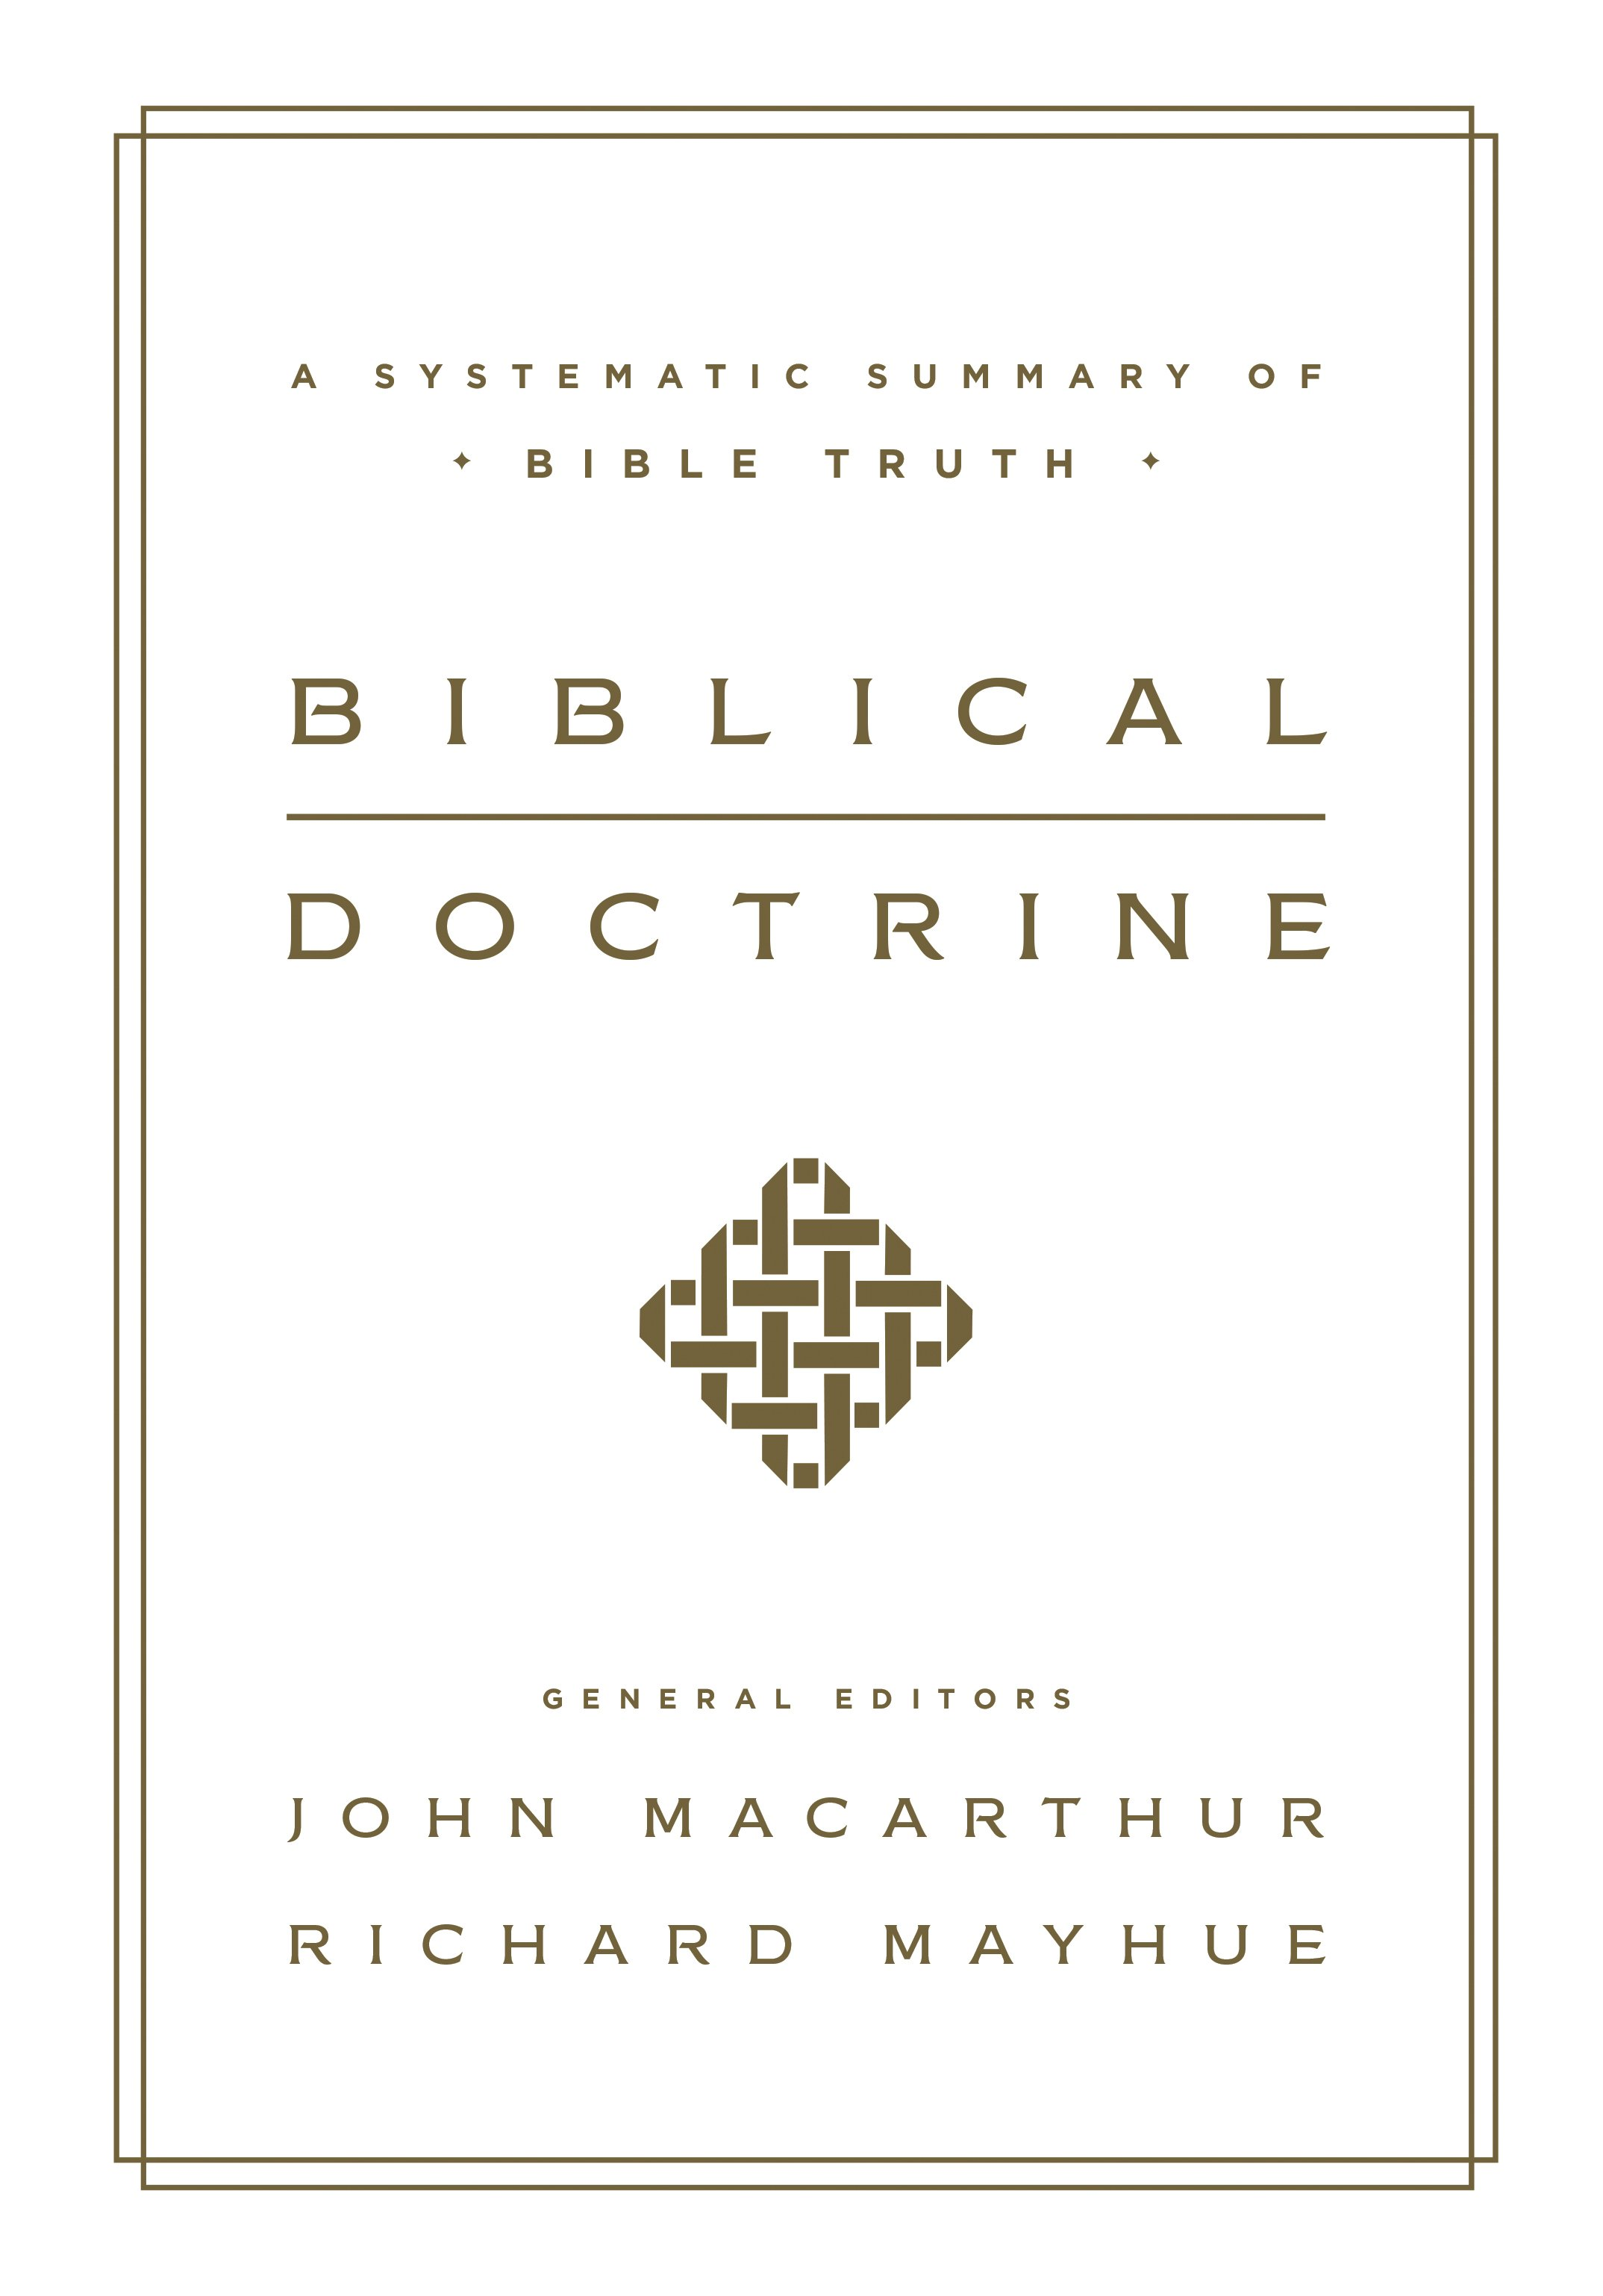 Biblical Doctrine: A Systematic Summary of Bible Truth by John MacArthur, Richard L. Mayhue, ISBN: 9781433545917